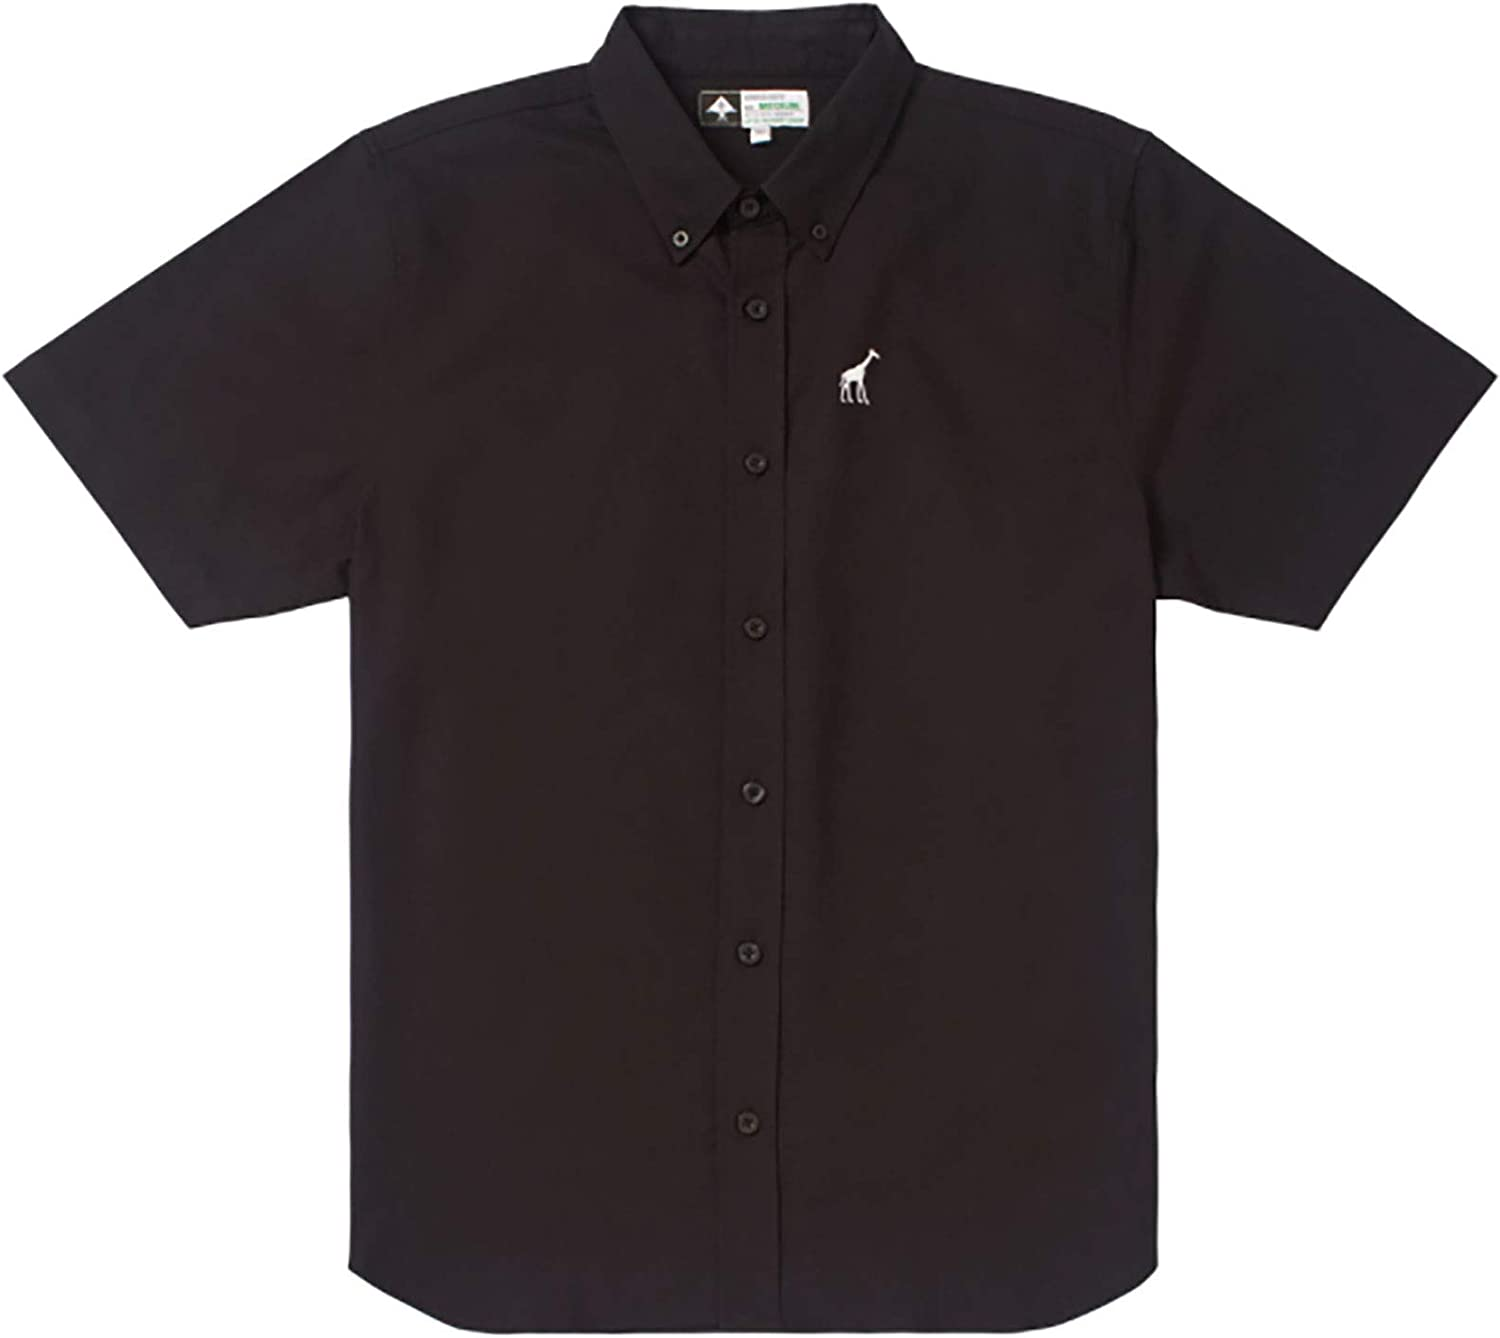 LRG Young Men's Lifted Research Group Short Sleeve Woven Button Up Shirt